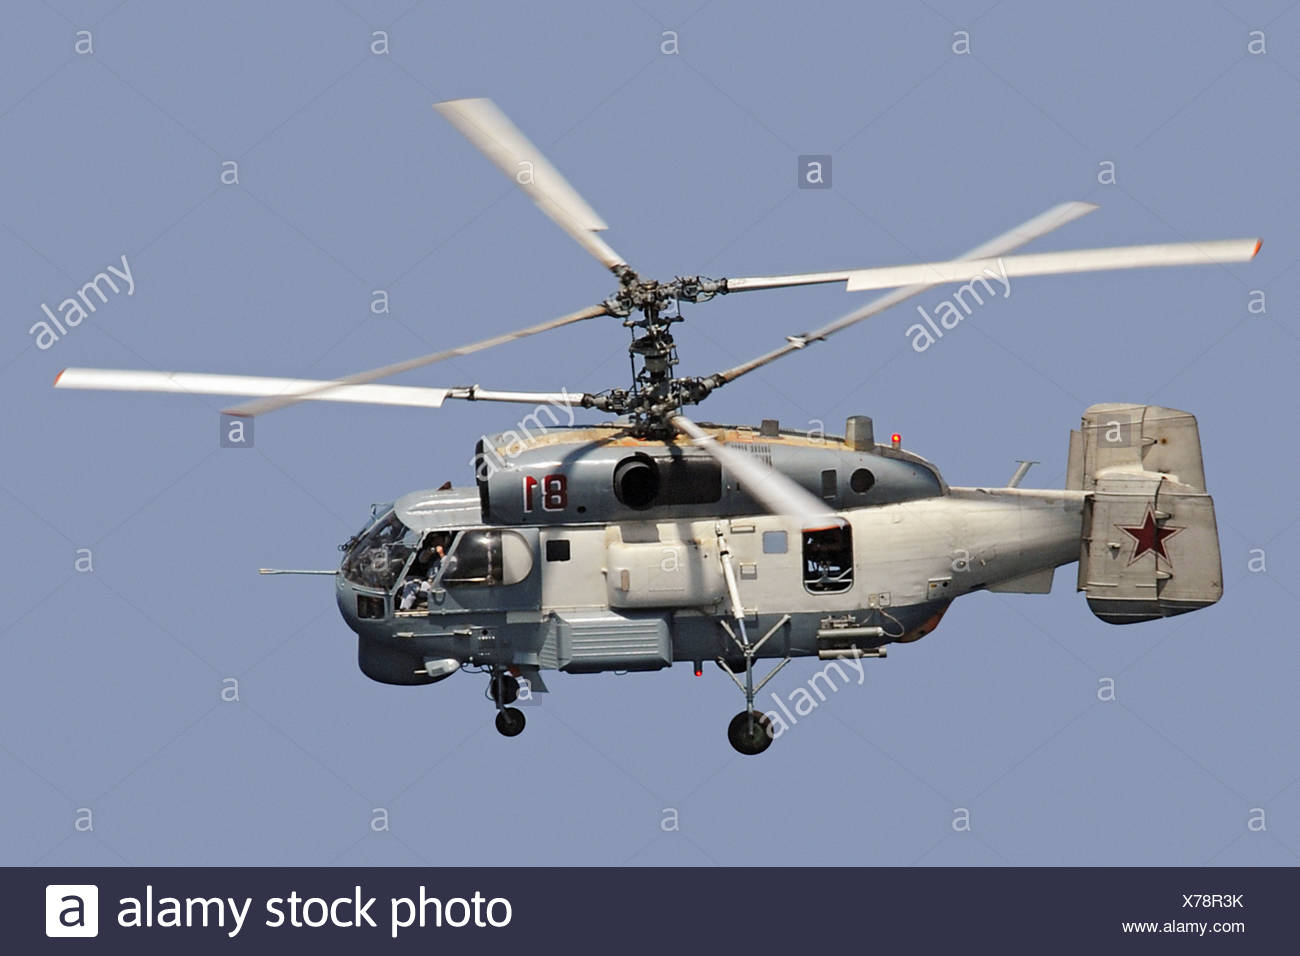 Russian Helicopter Photographed Guided-Missile Cruiser USS Vella Gulf - Stock Image